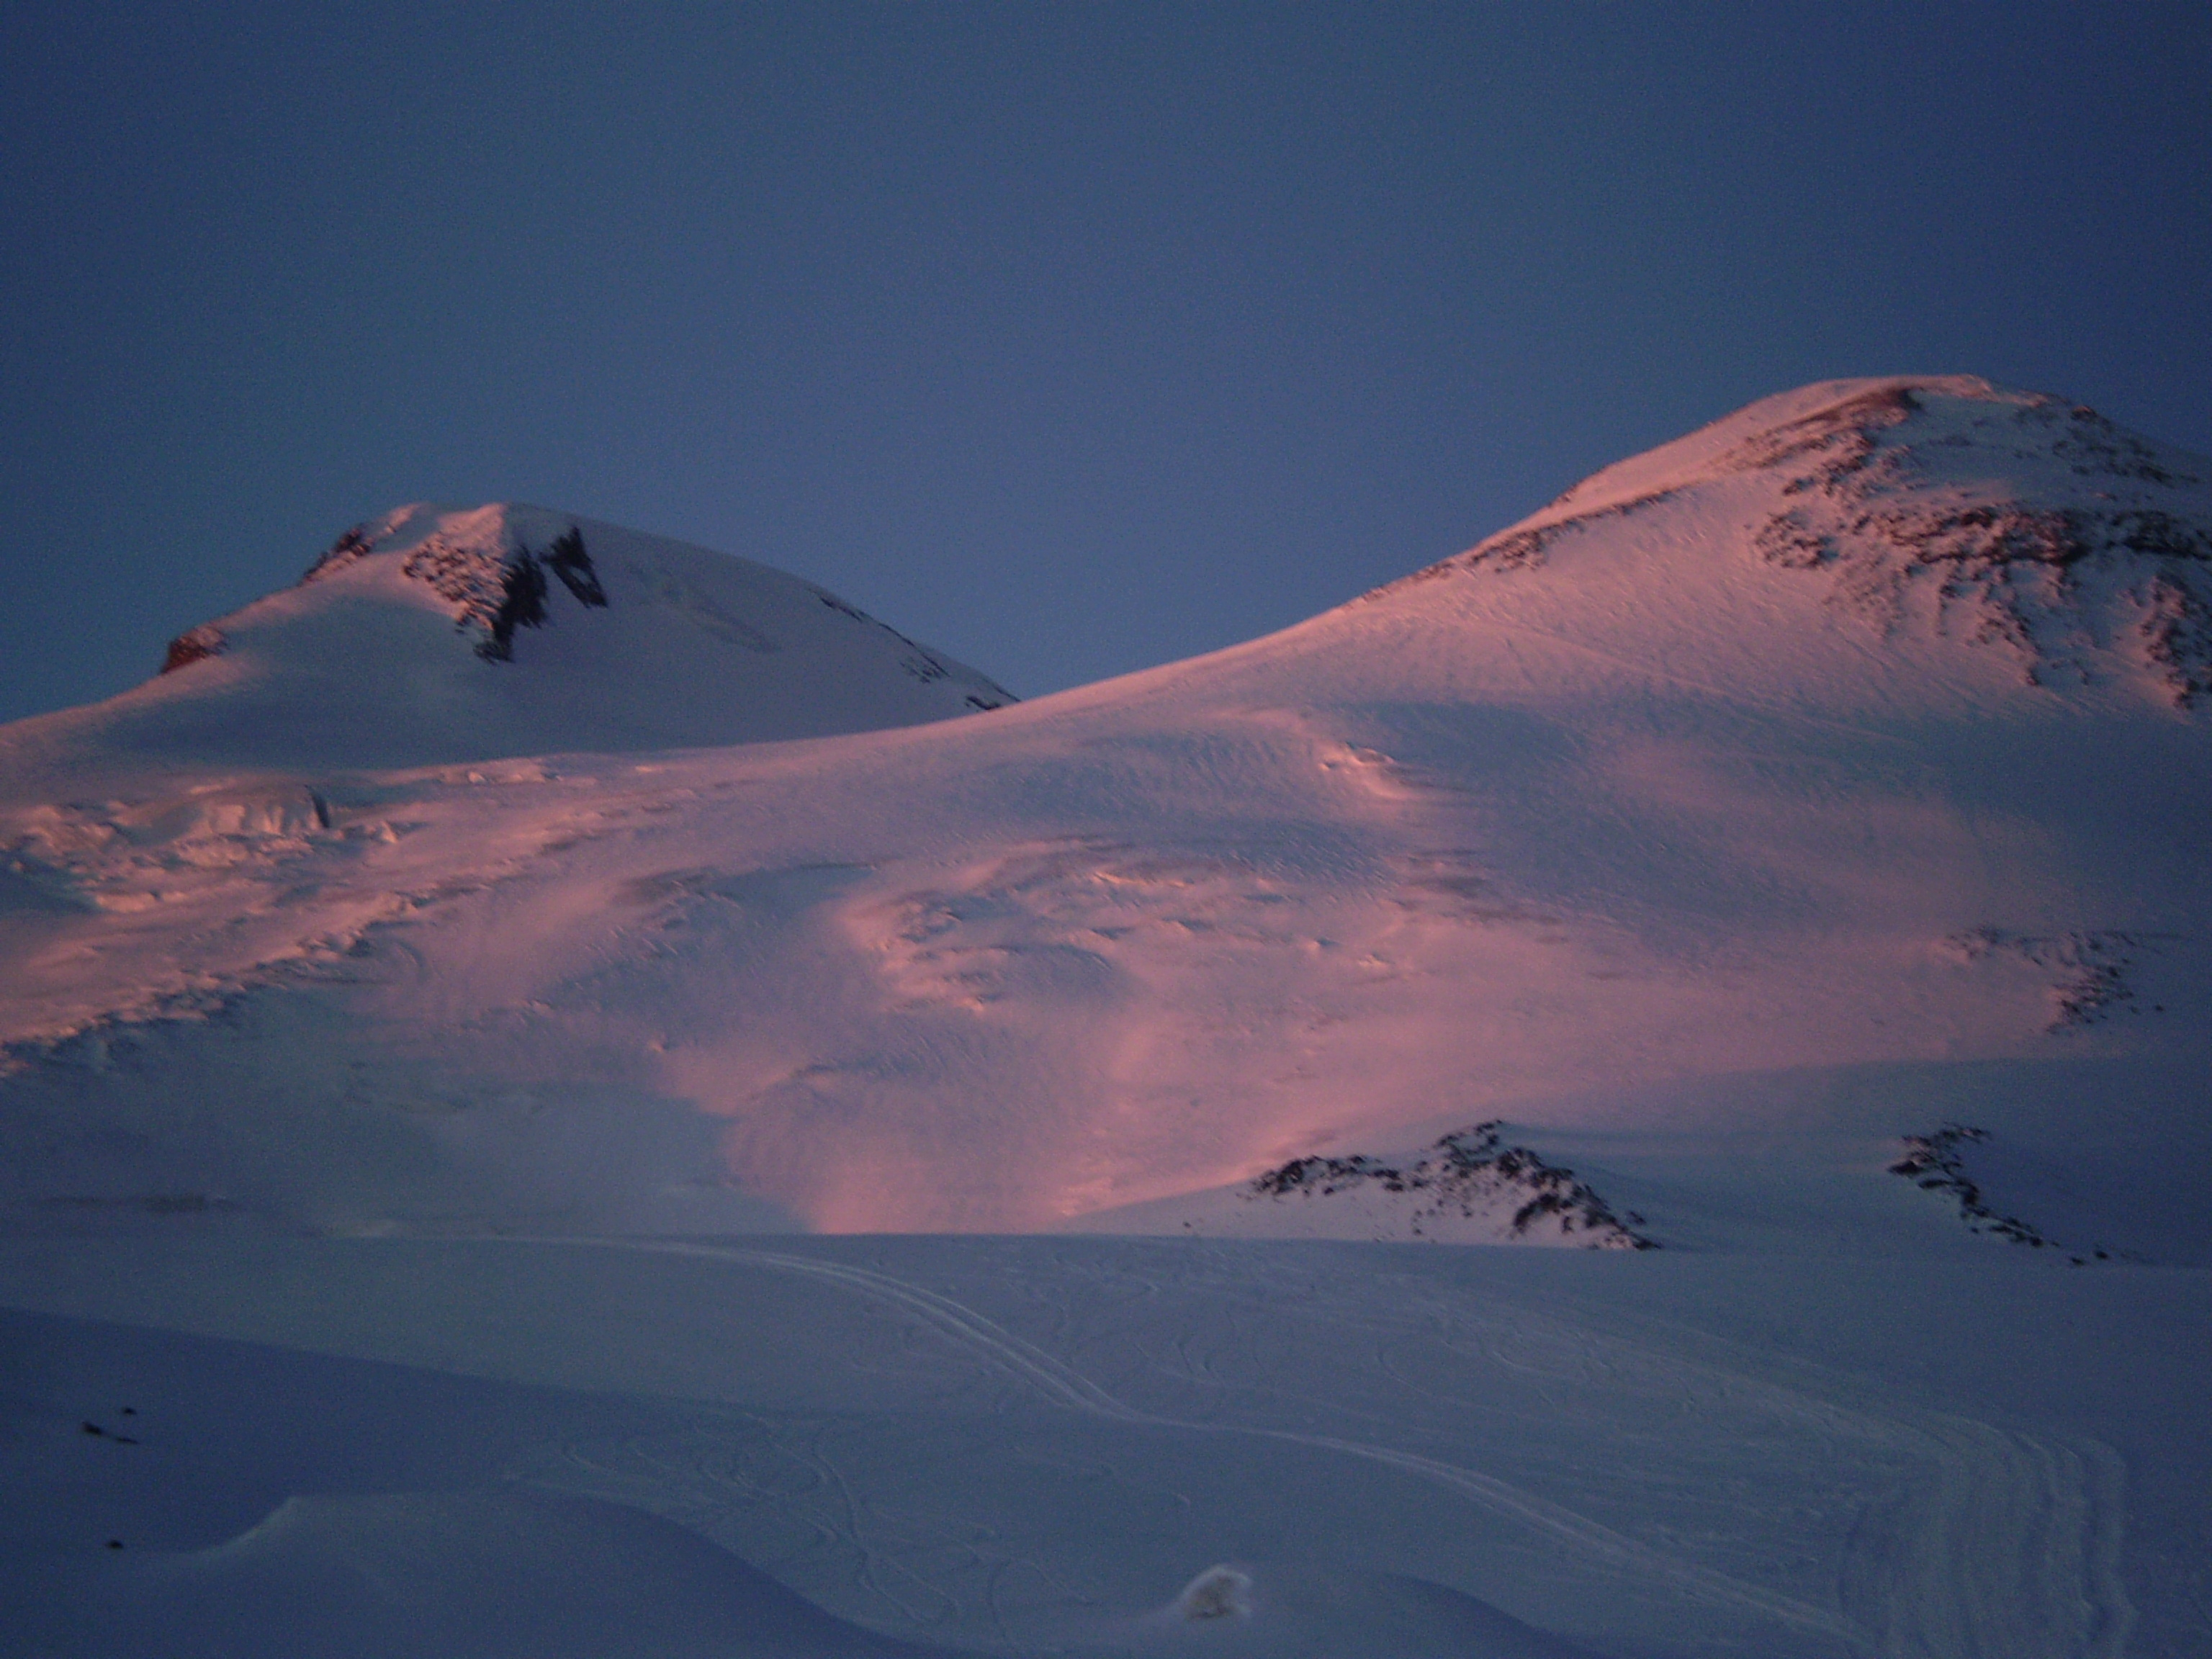 Mt. Elbrus at sun set